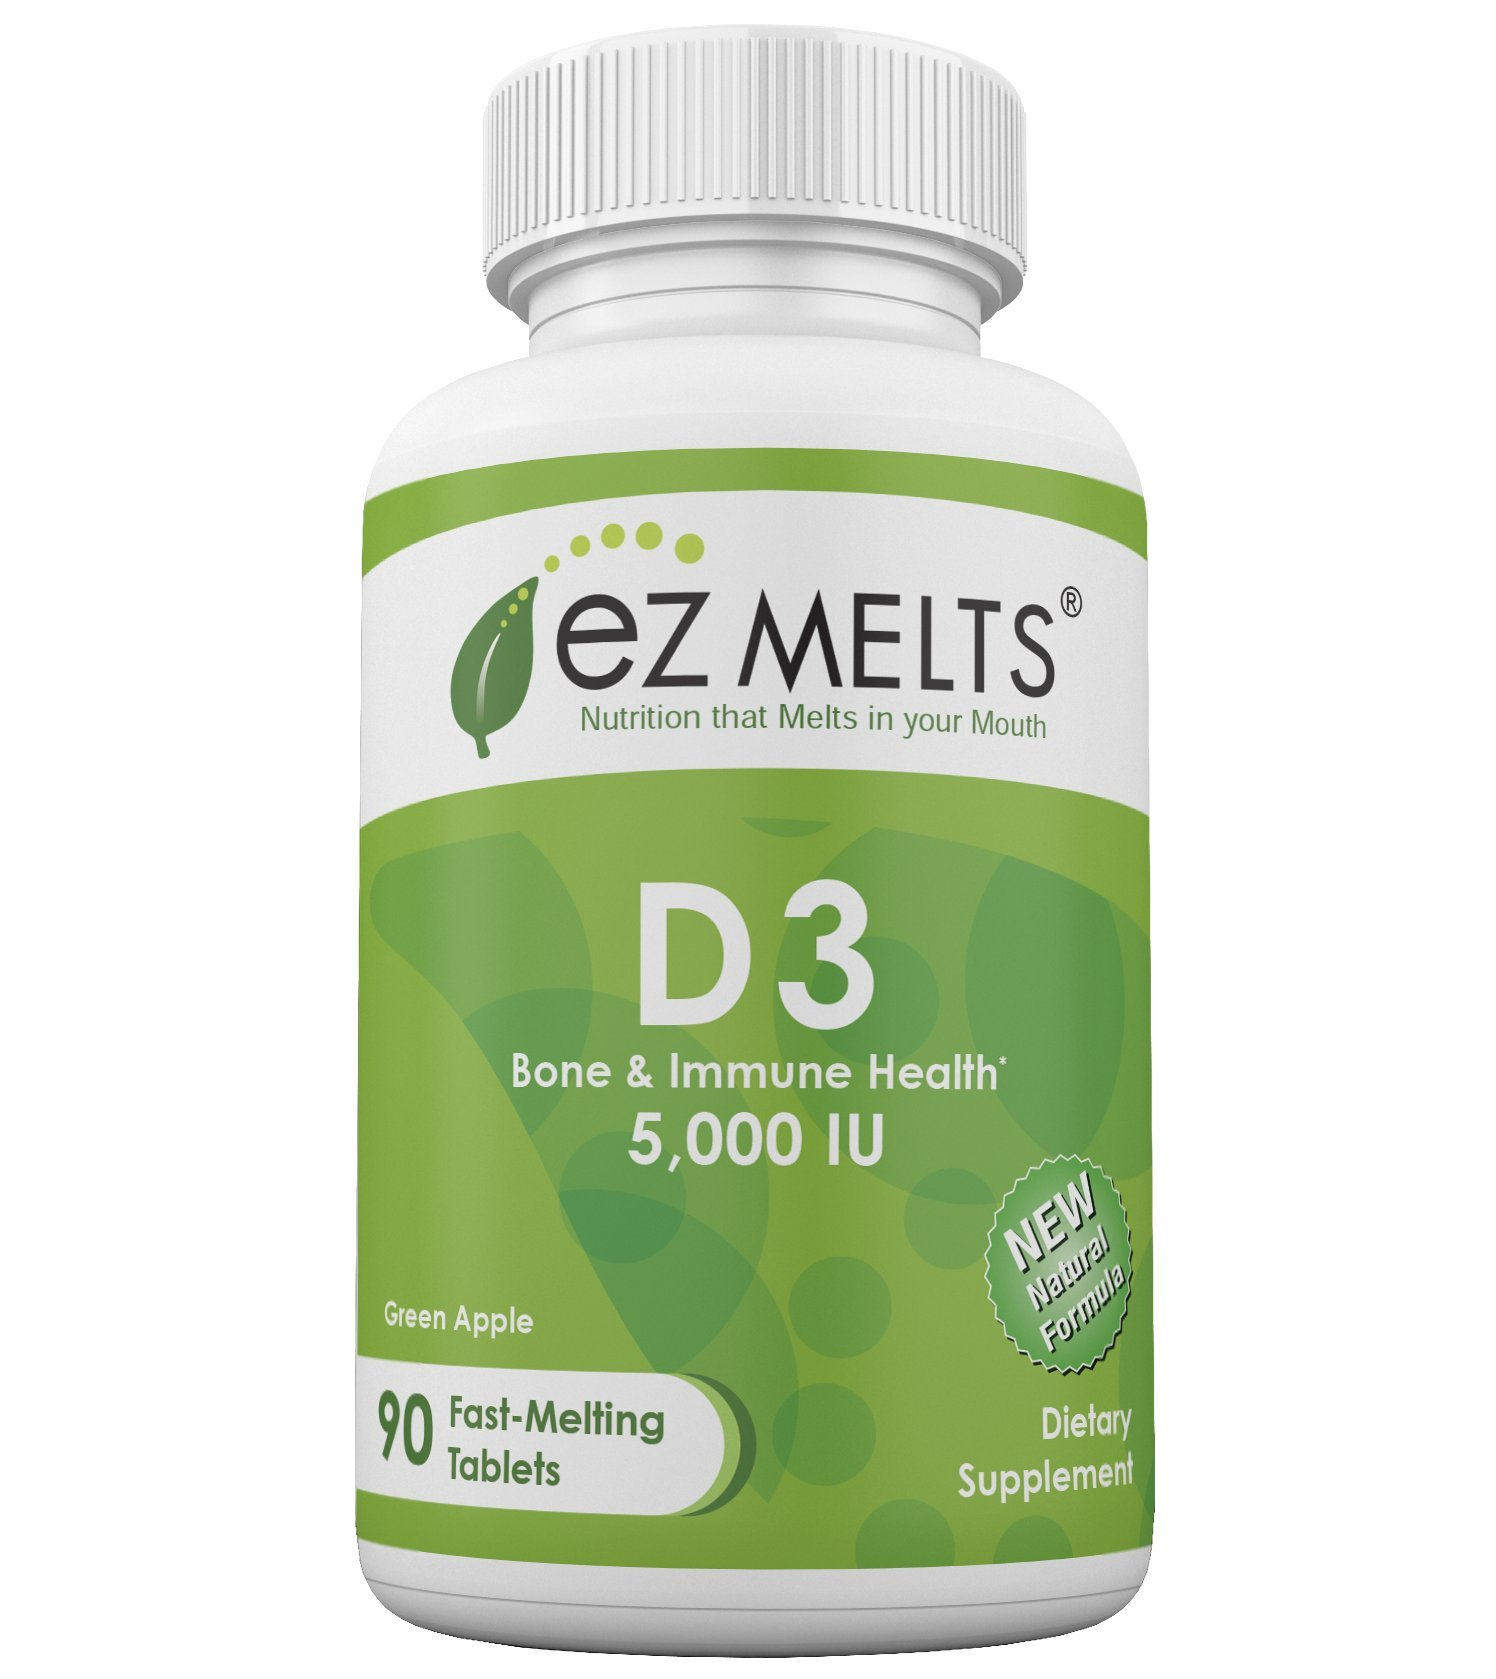 EZ Melts D3, 5,000 IU, Dissolvable Vitamins, Vegetarian, Zero Sugar, Natural Apple Flavor, 90 Fast Melting Tablets, Vitamin D3 Supplement